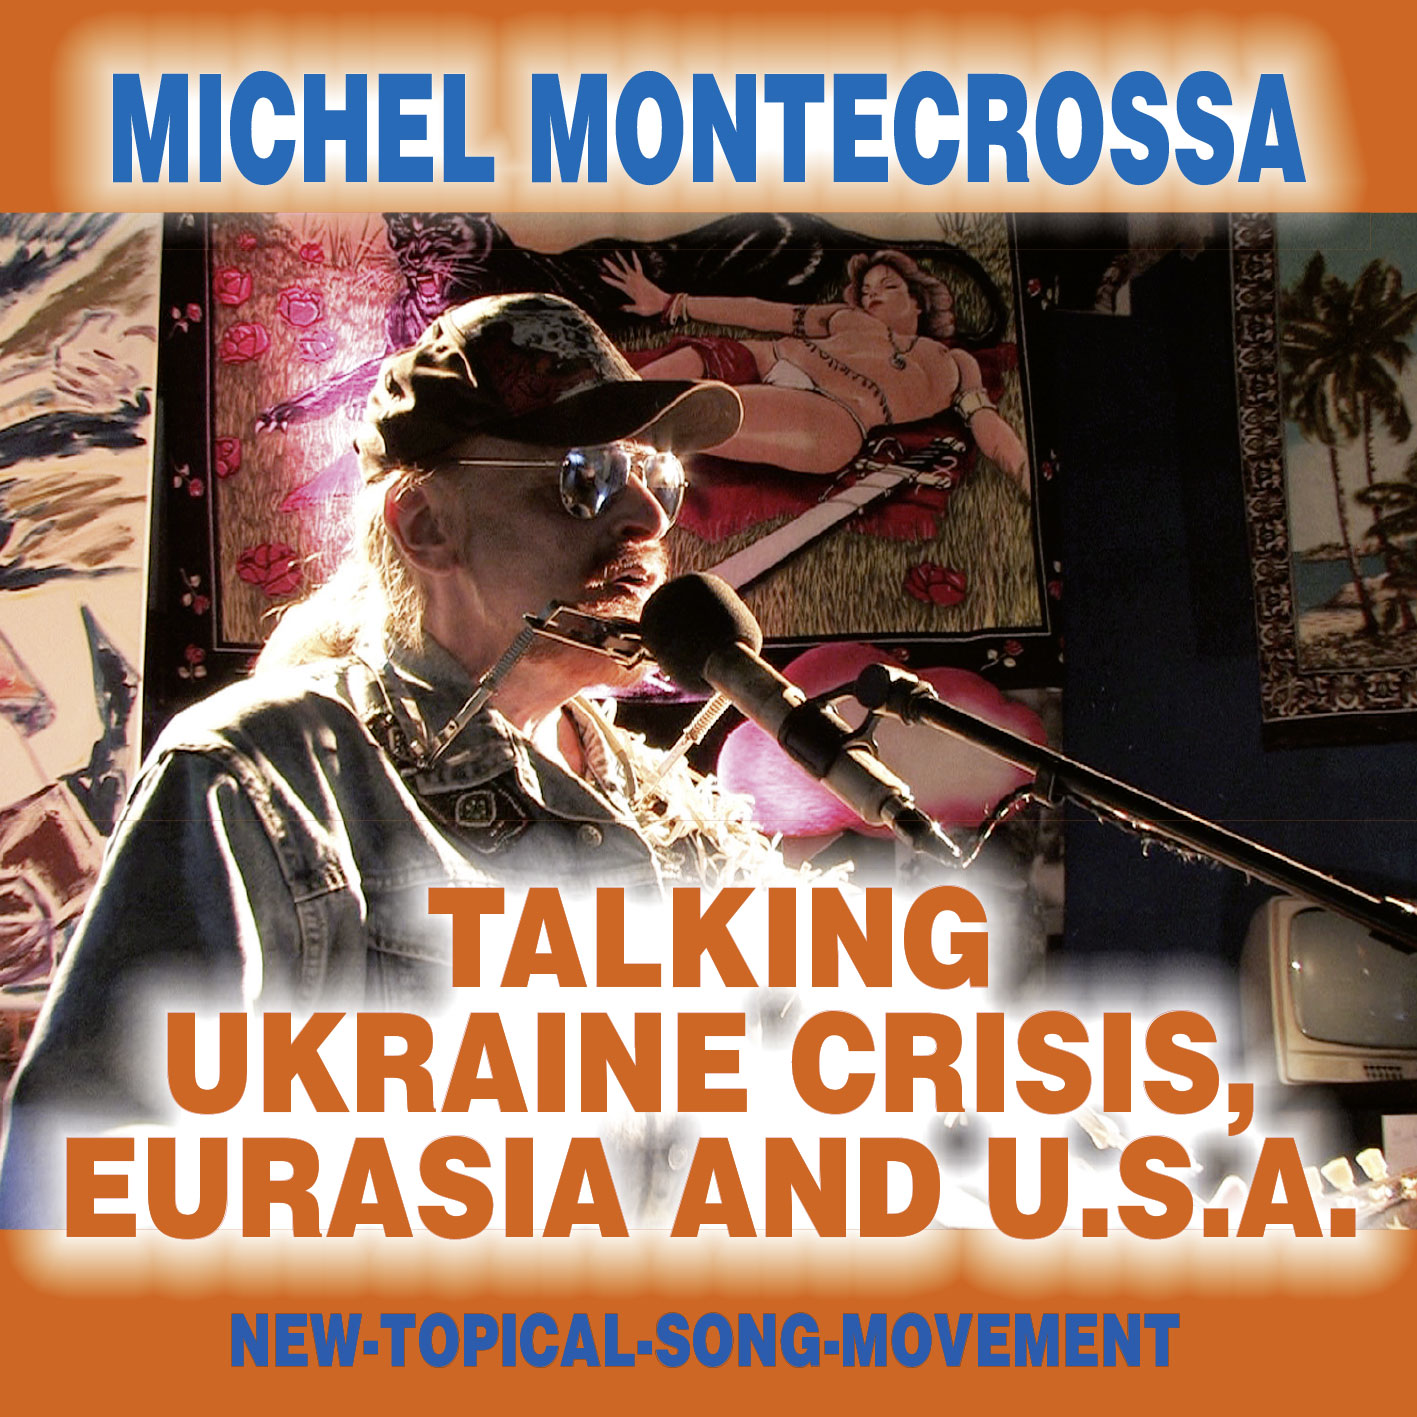 Talking Ukraine Crisis, Eurasia and U.S.A.